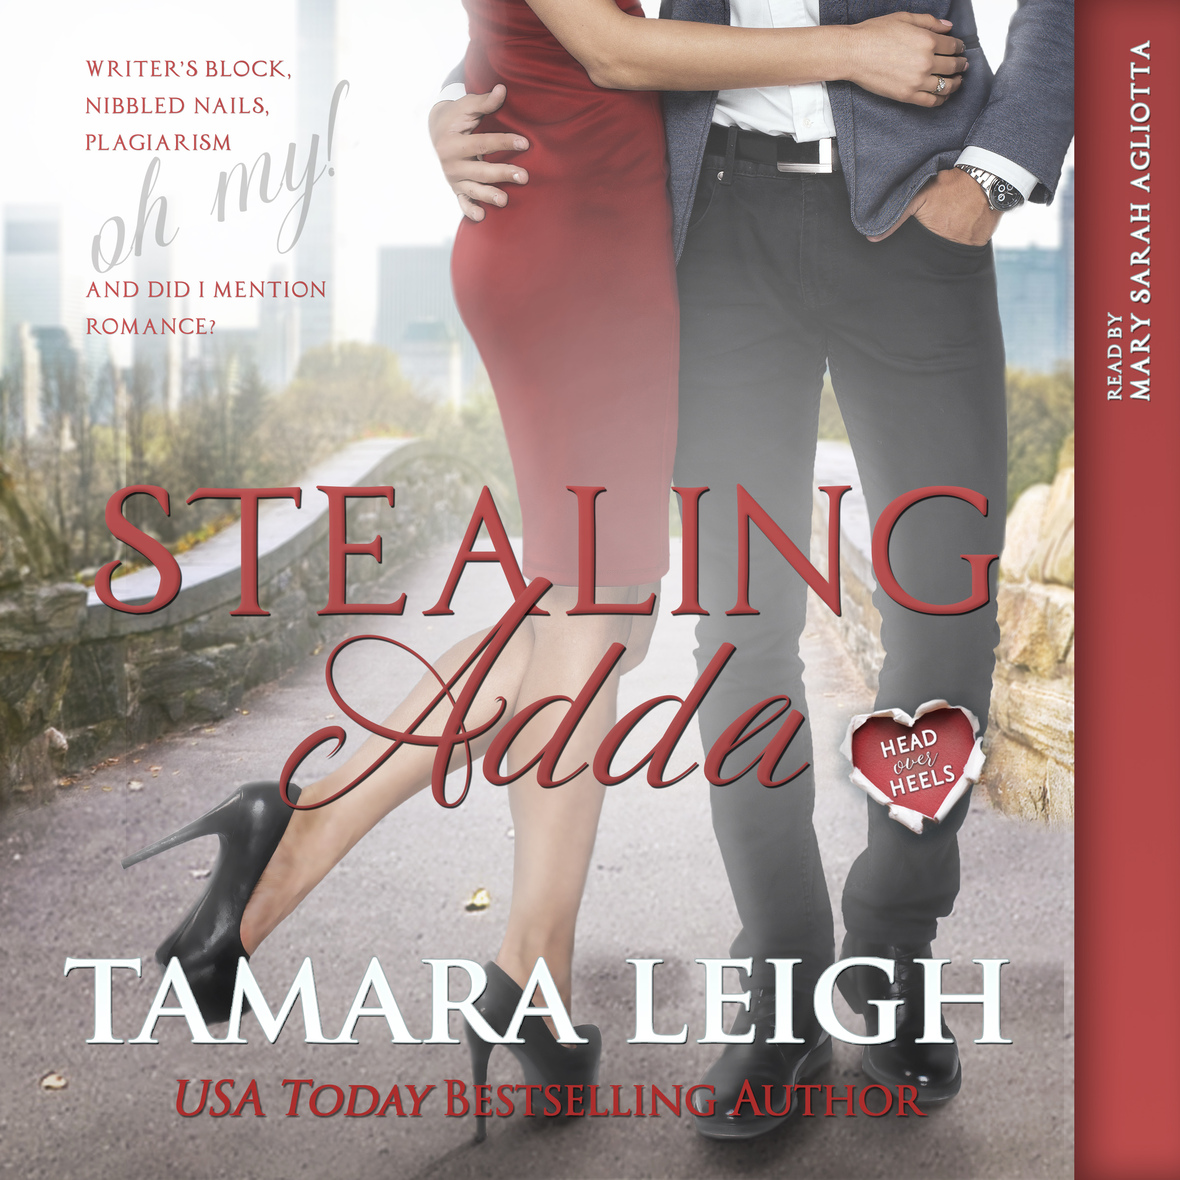 CLBD2018 Tamara Leigh HOH01 Stealing Adda AUDIO FINAL20190112